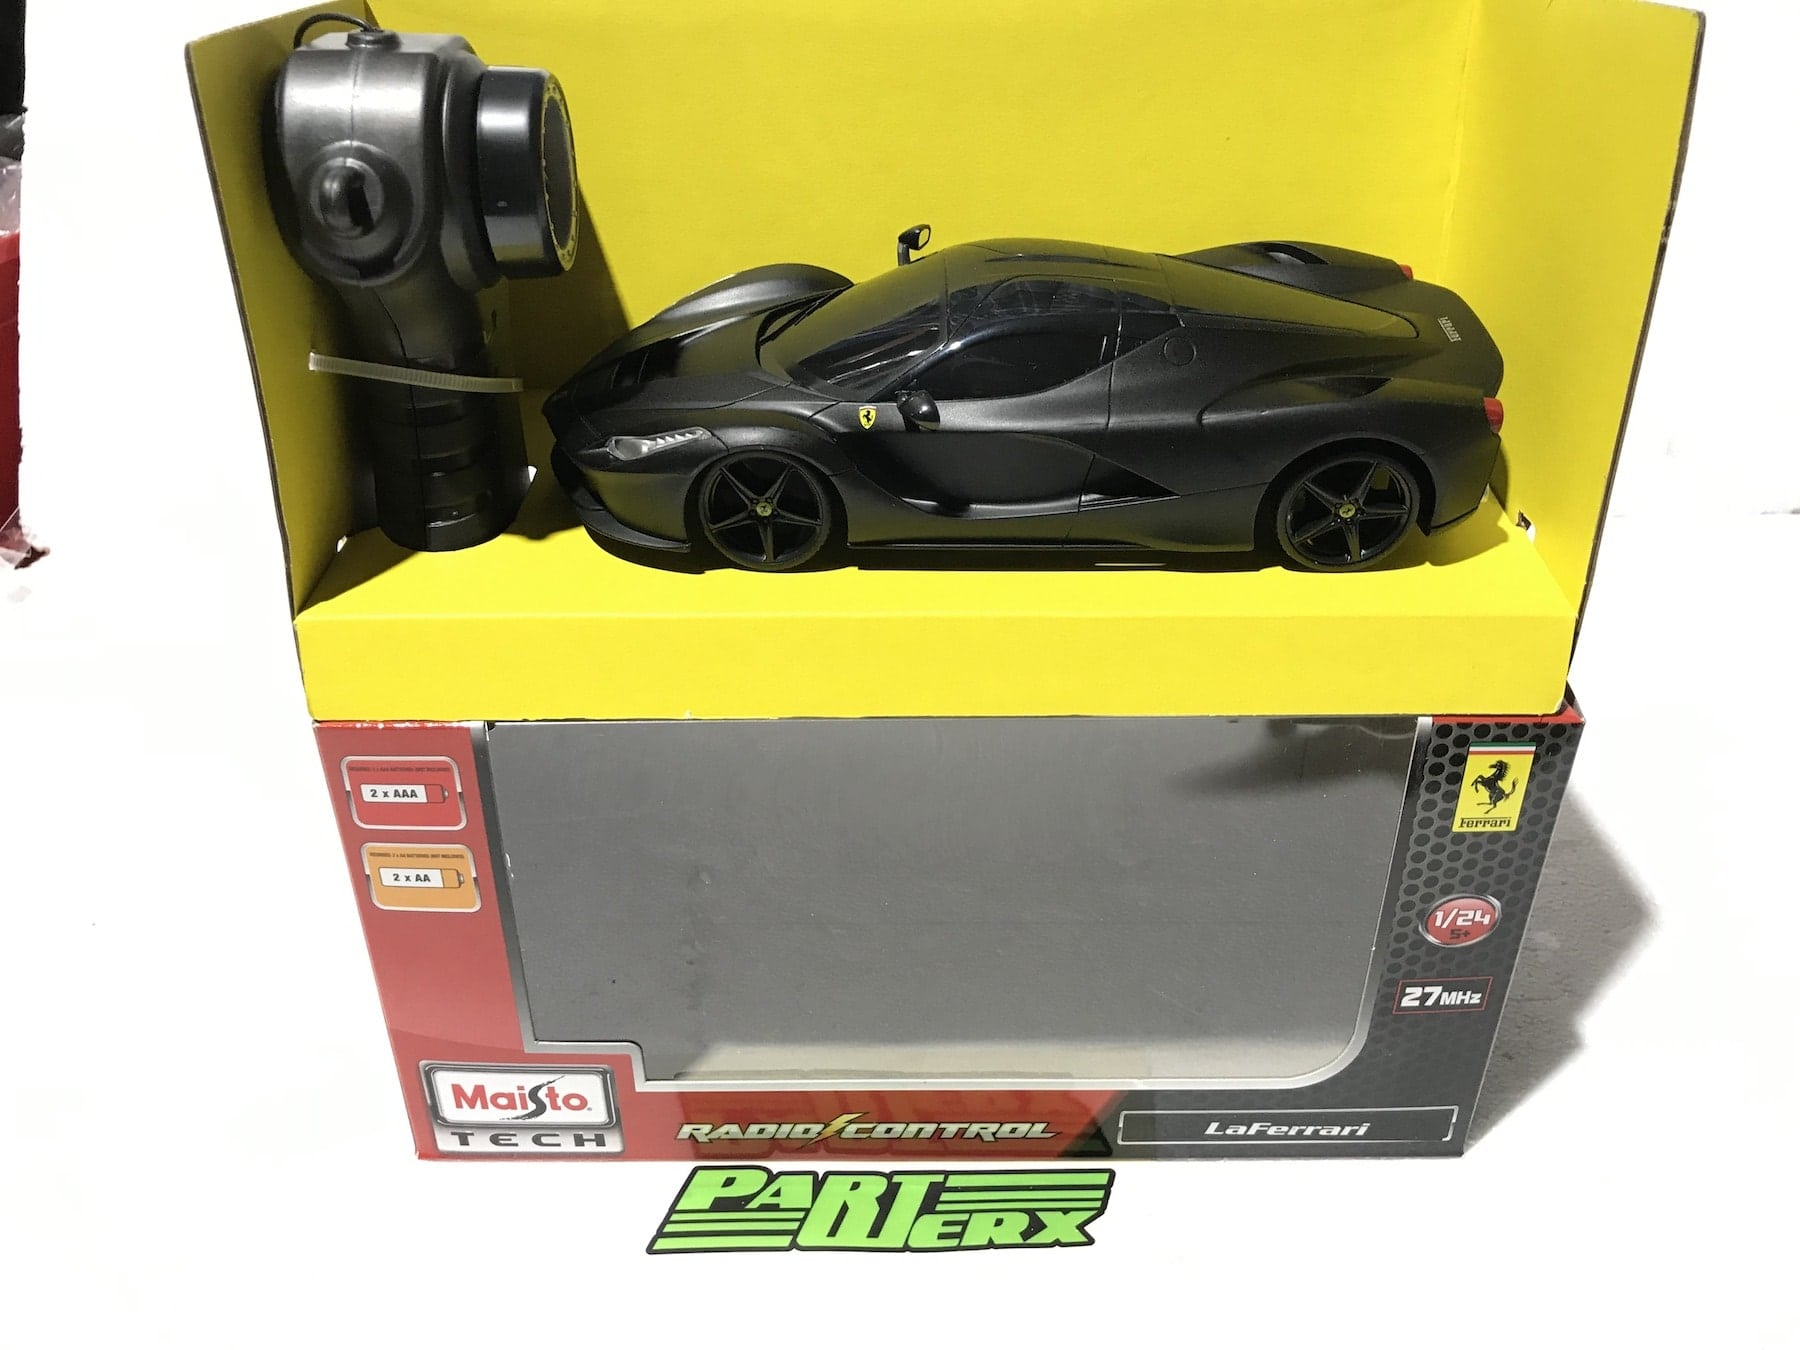 FERRARI RC LA FERRARI 1:24 RC Radio Controlled Scale Model Car Big Boys Toy Christmas Gift Xmas Birthday Present